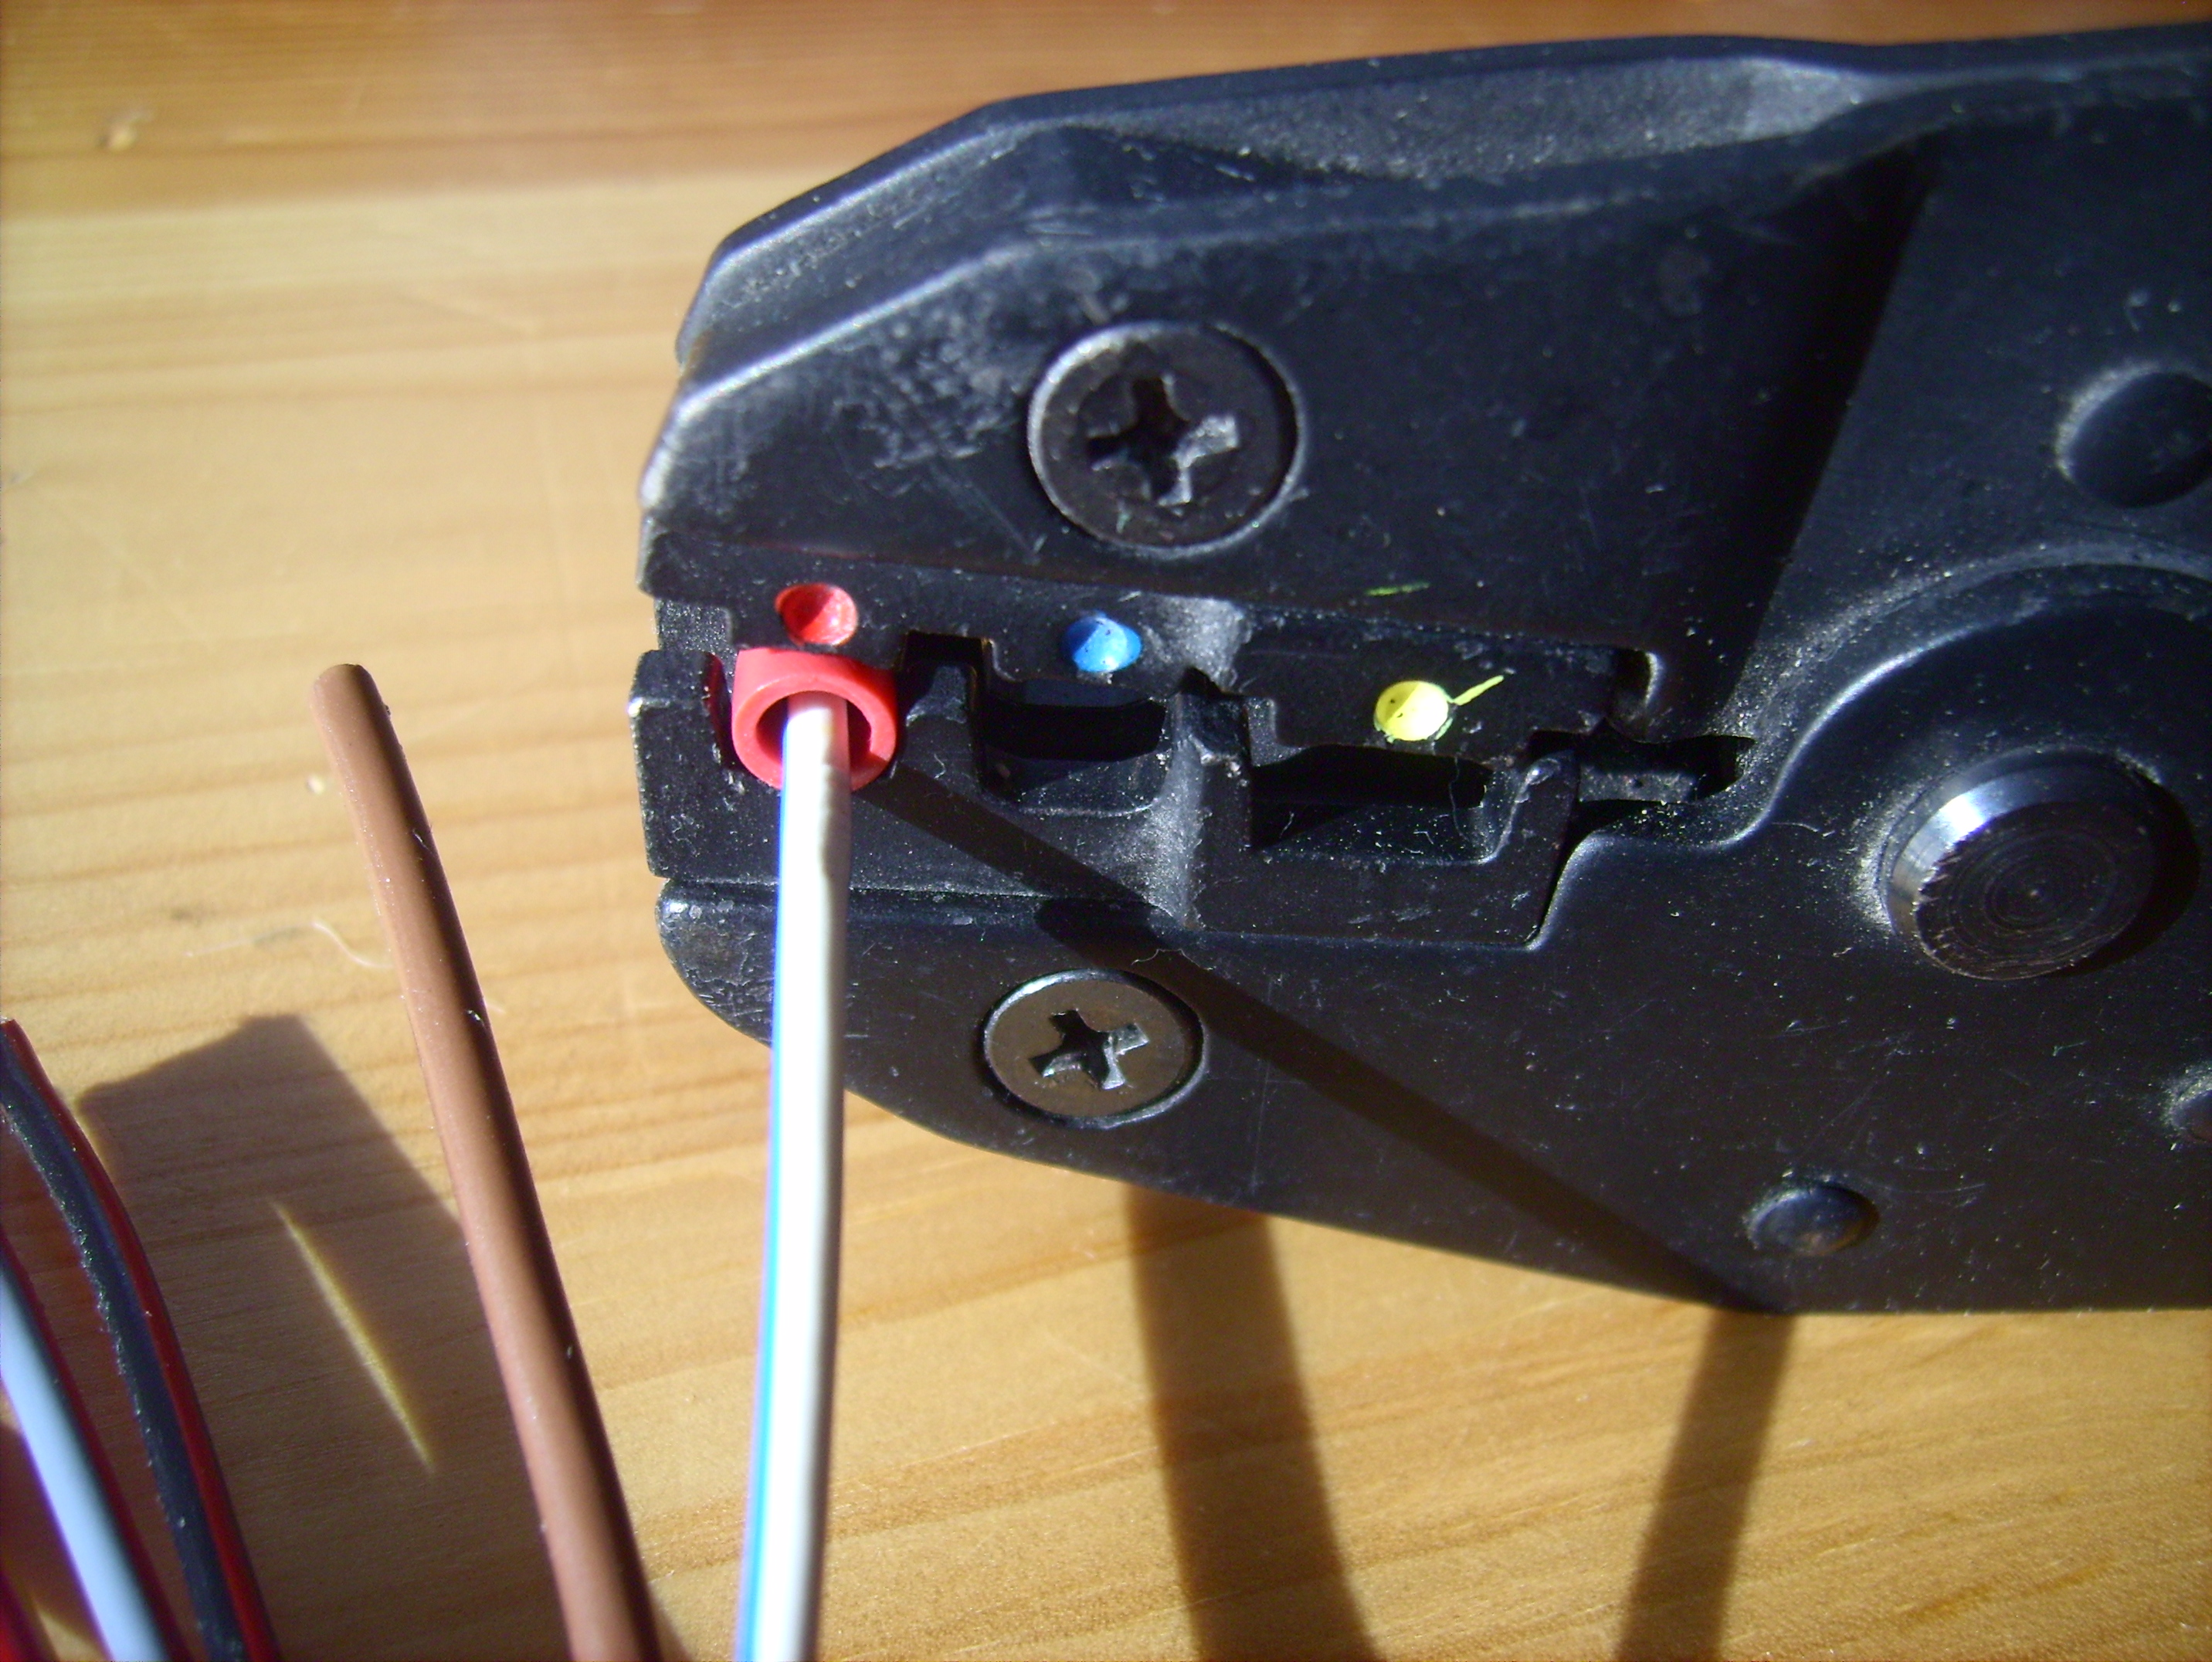 cannon plugs wire harness crimp  electrical  wikipedia  crimp  electrical  wikipedia